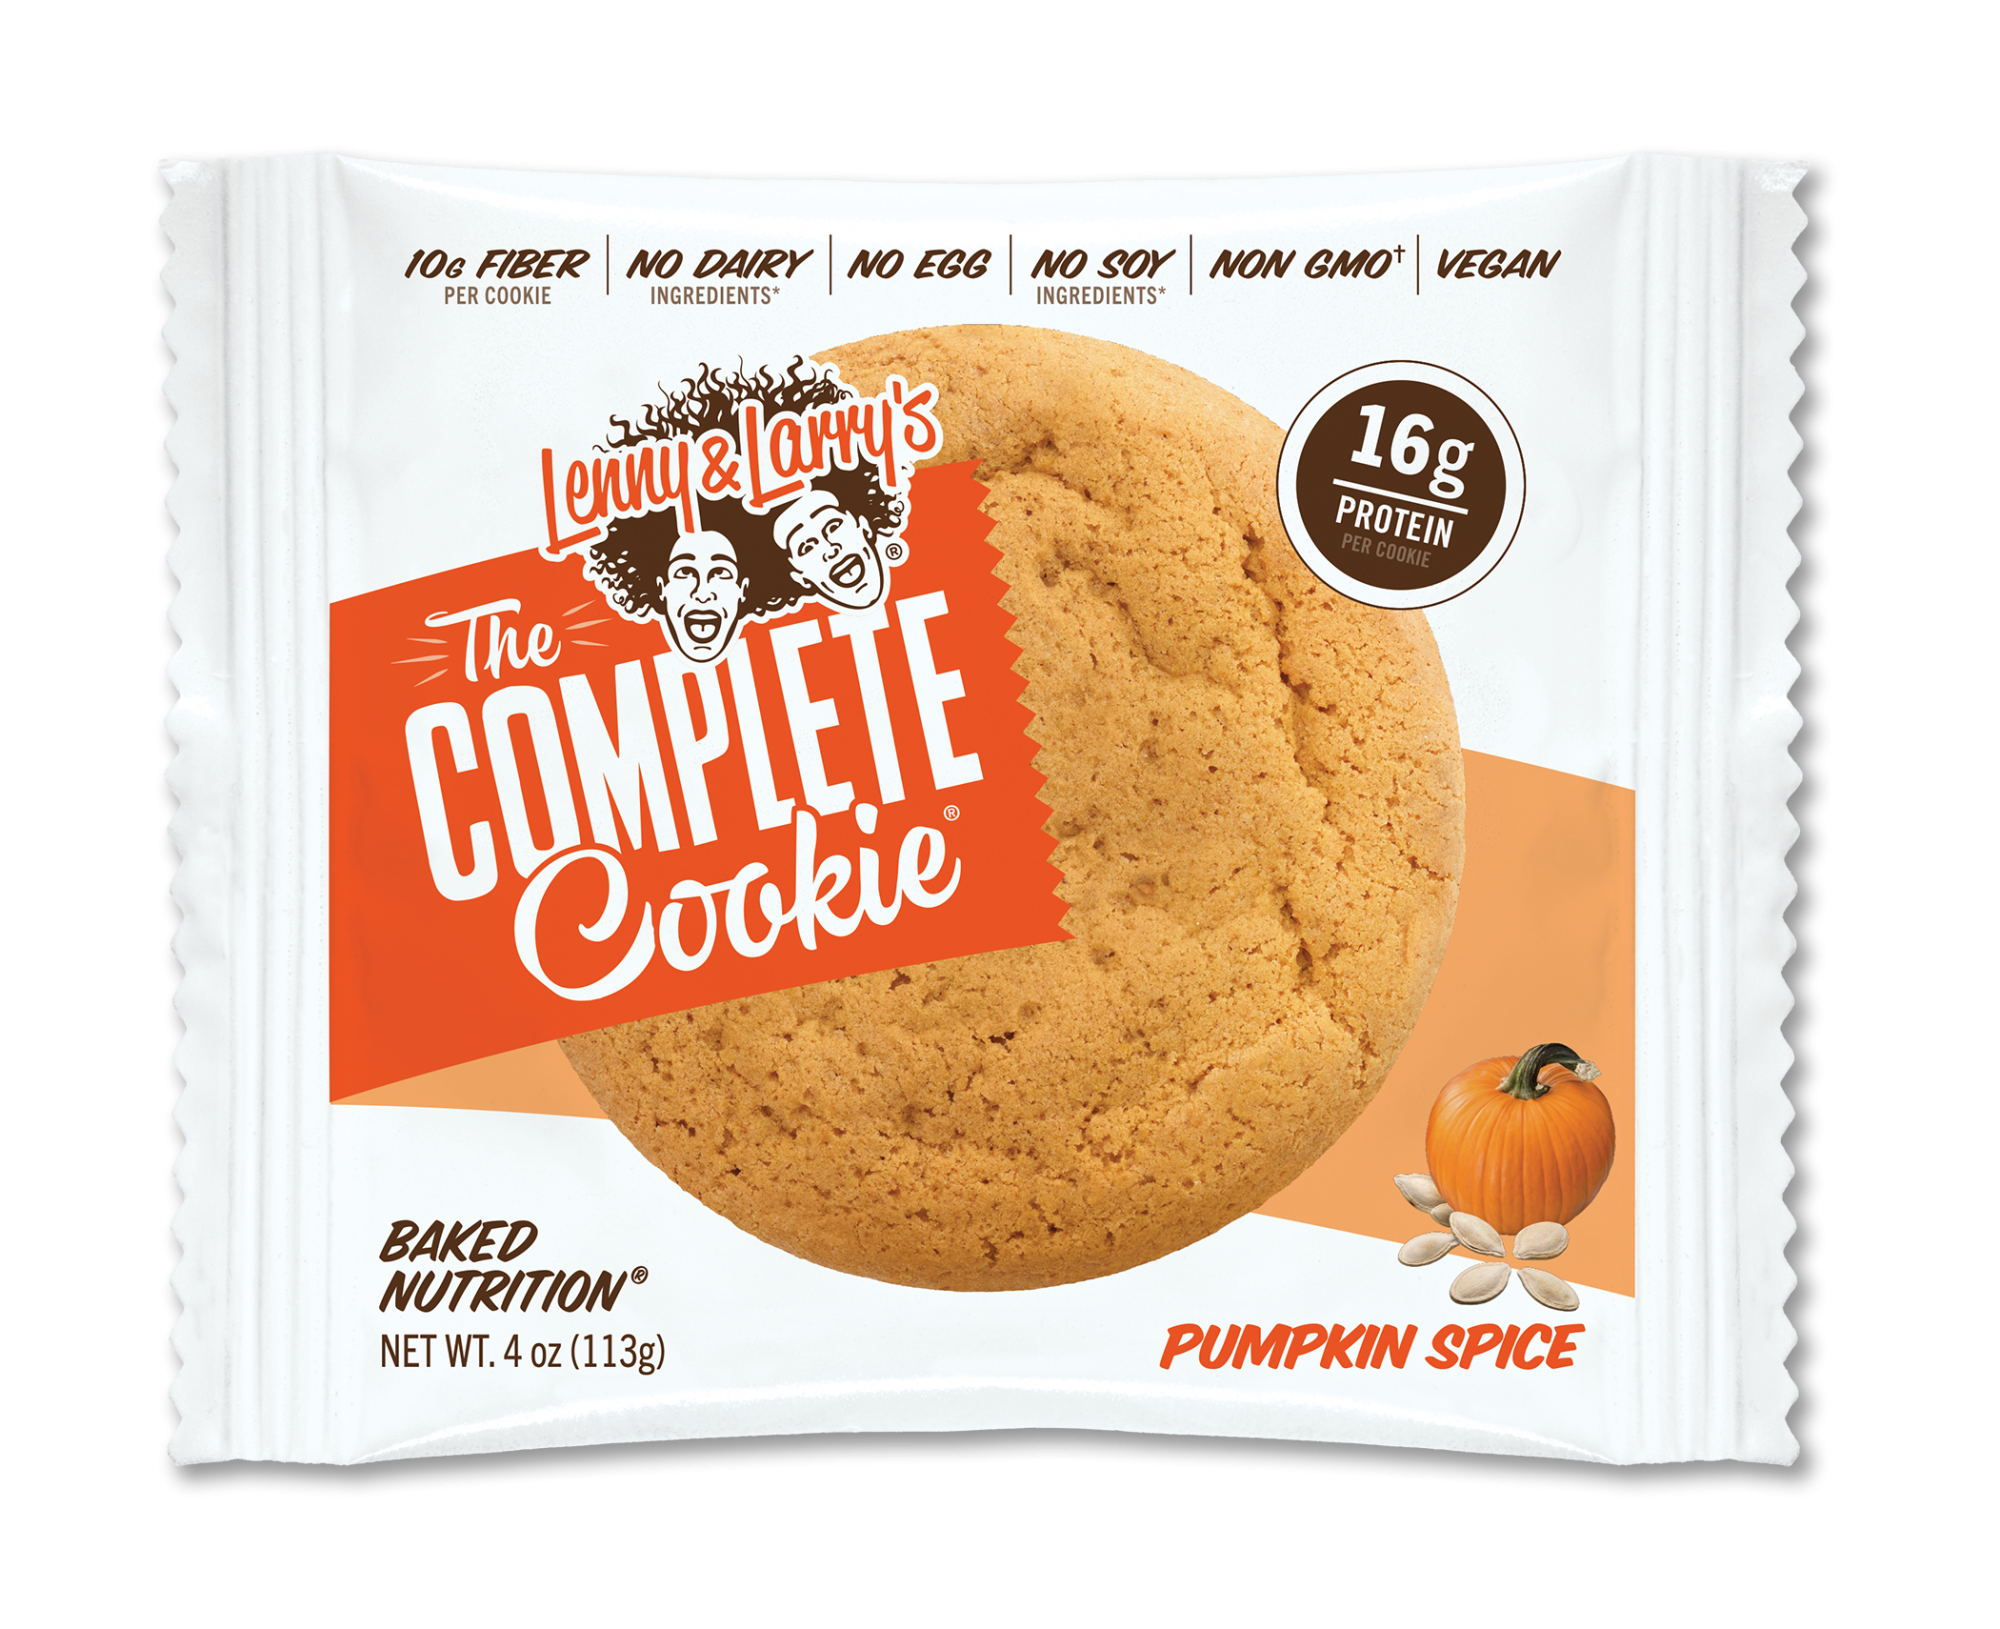 LENNY AND LARRY'S PUMPKIN SPICE THE COMPLETE COOKIE